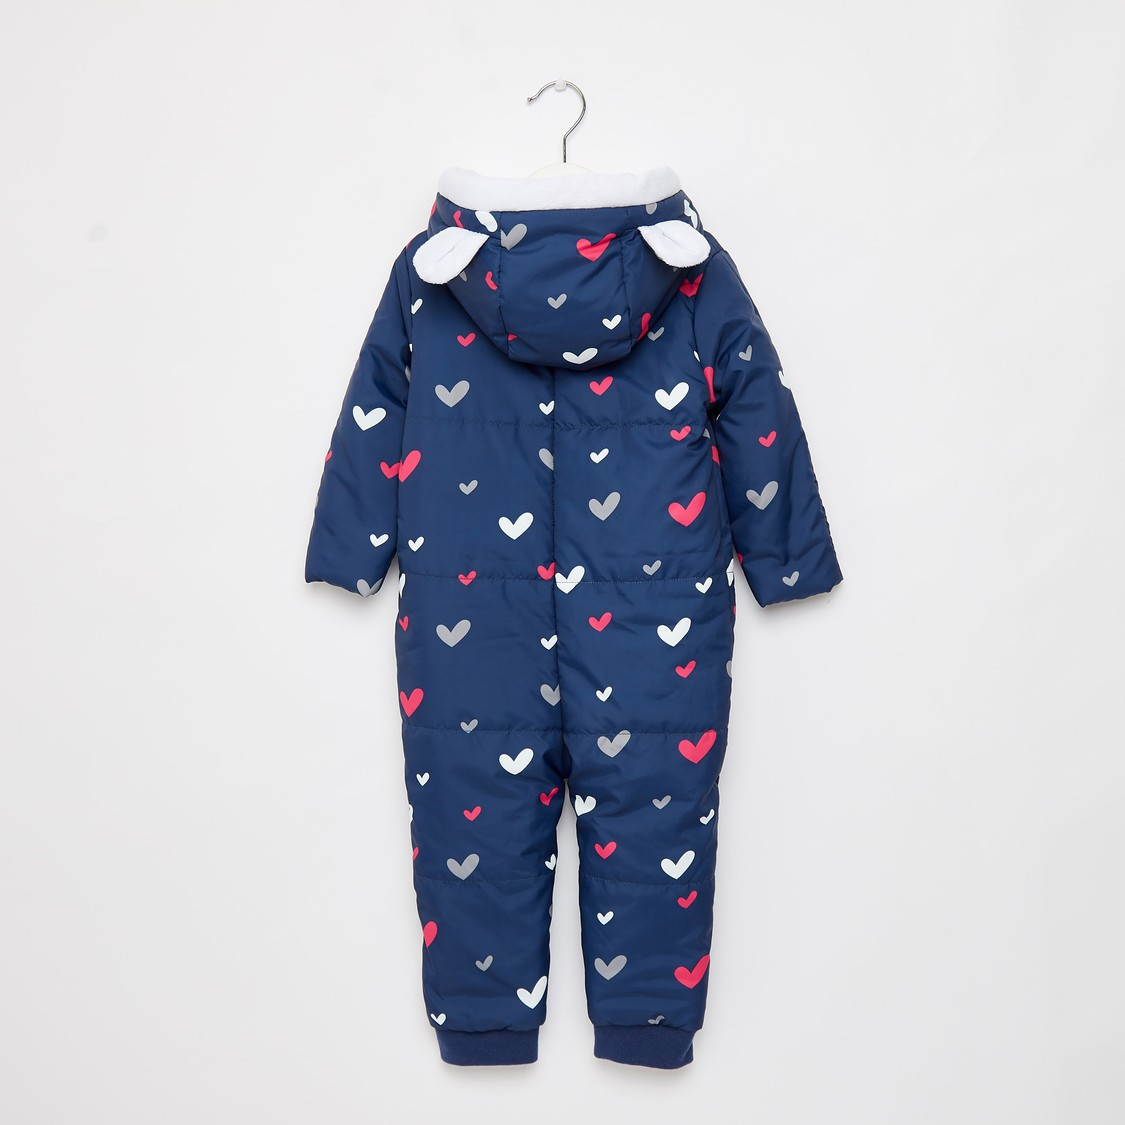 All-Over Hearts Print Pram Suit with Hooded Neck and Long Sleeves